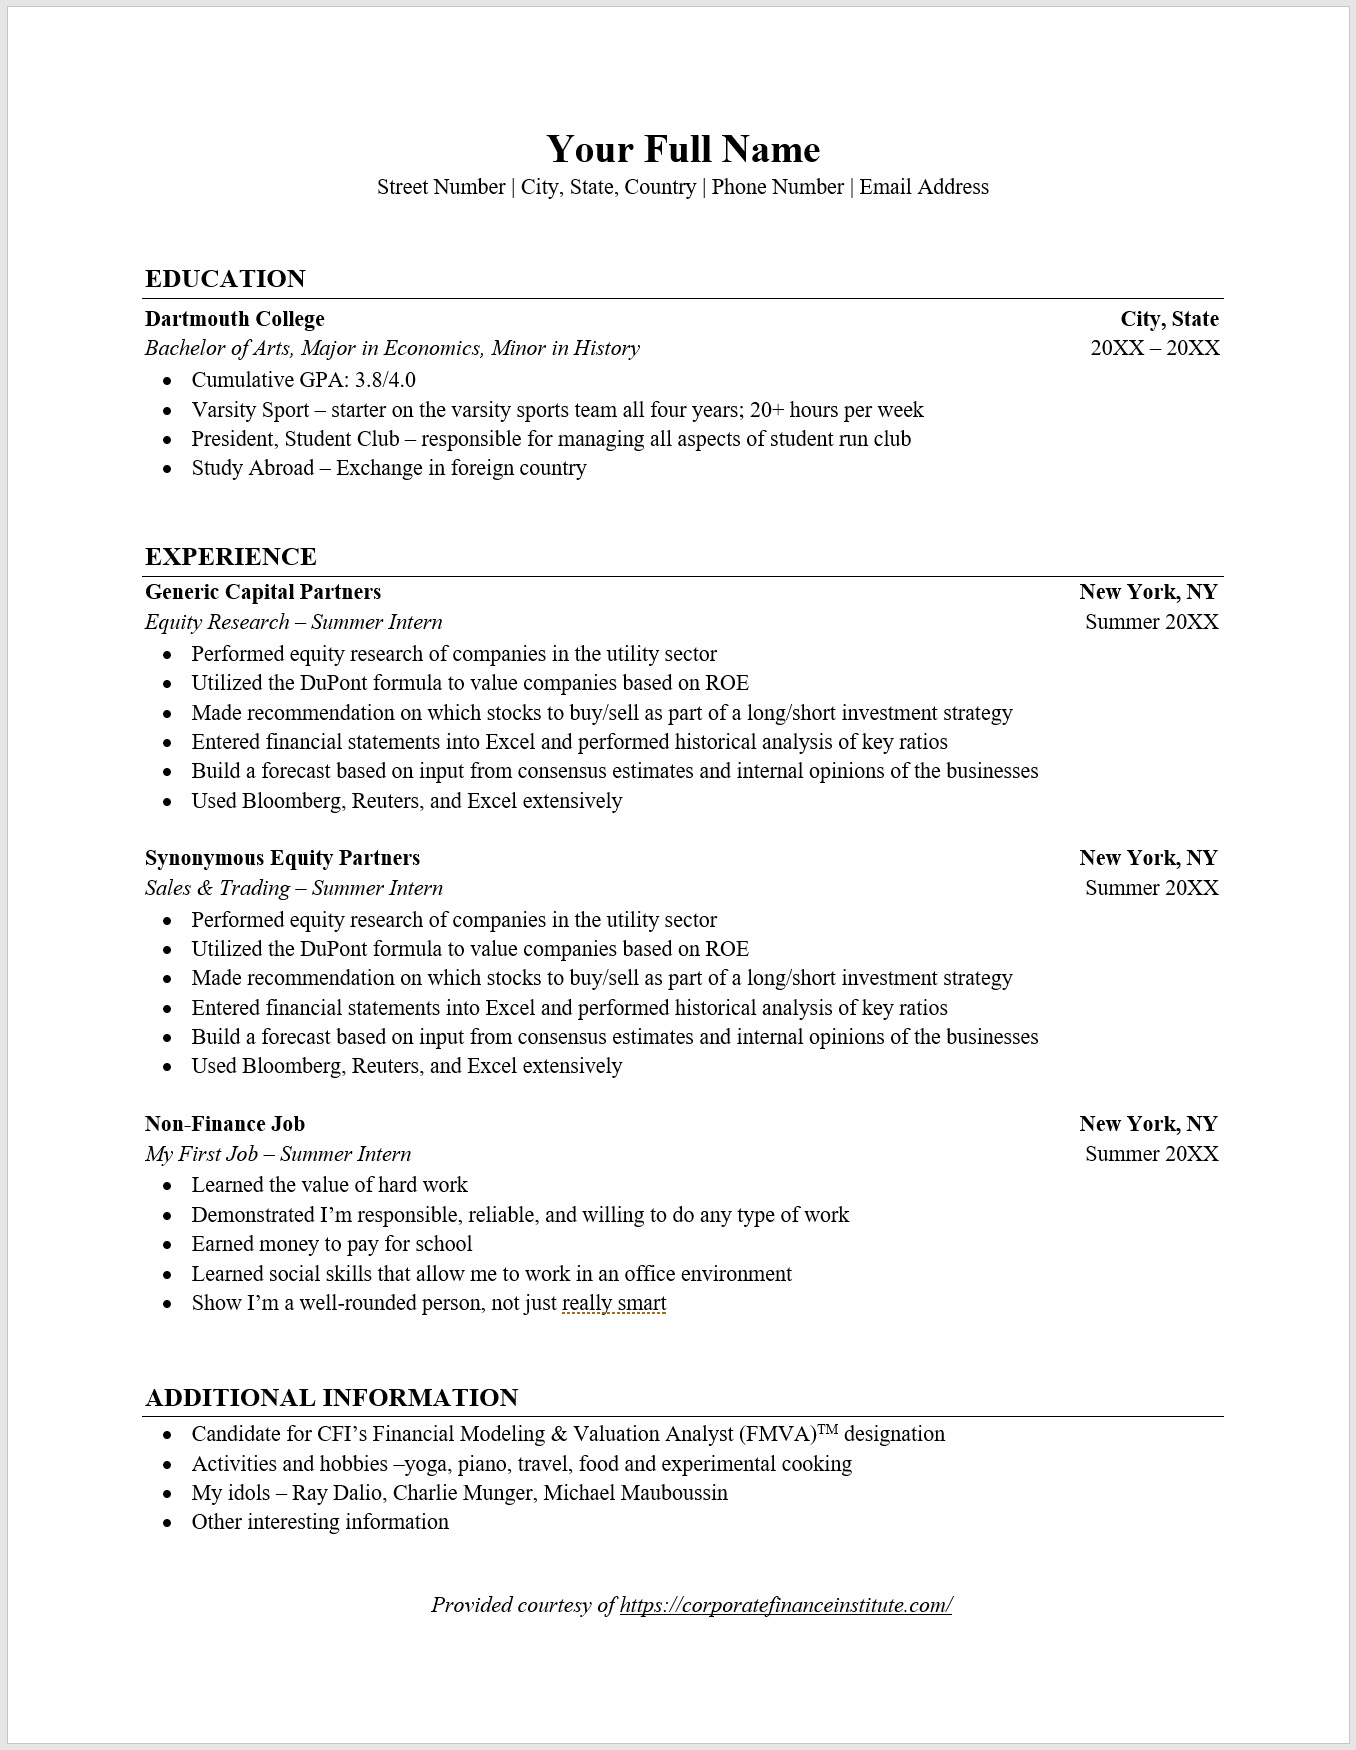 Resume Templates Examples | How To List Minor On Resume Overview Guide Examples